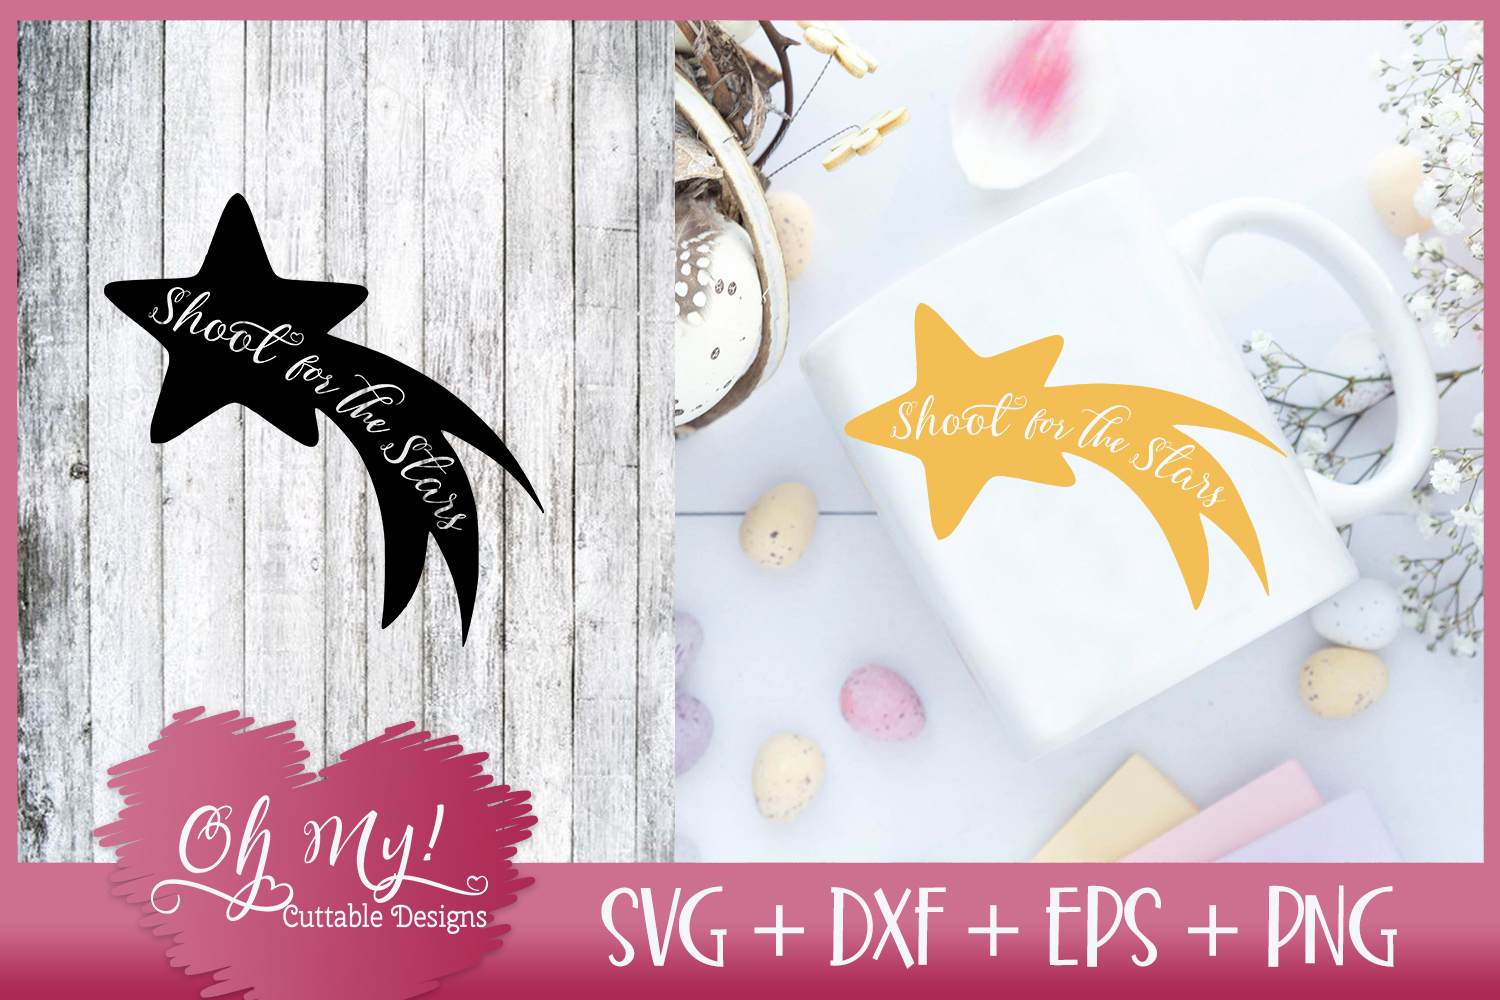 Shoot For The Stars - SVG DXF EPS PNG Cutting File example image 1